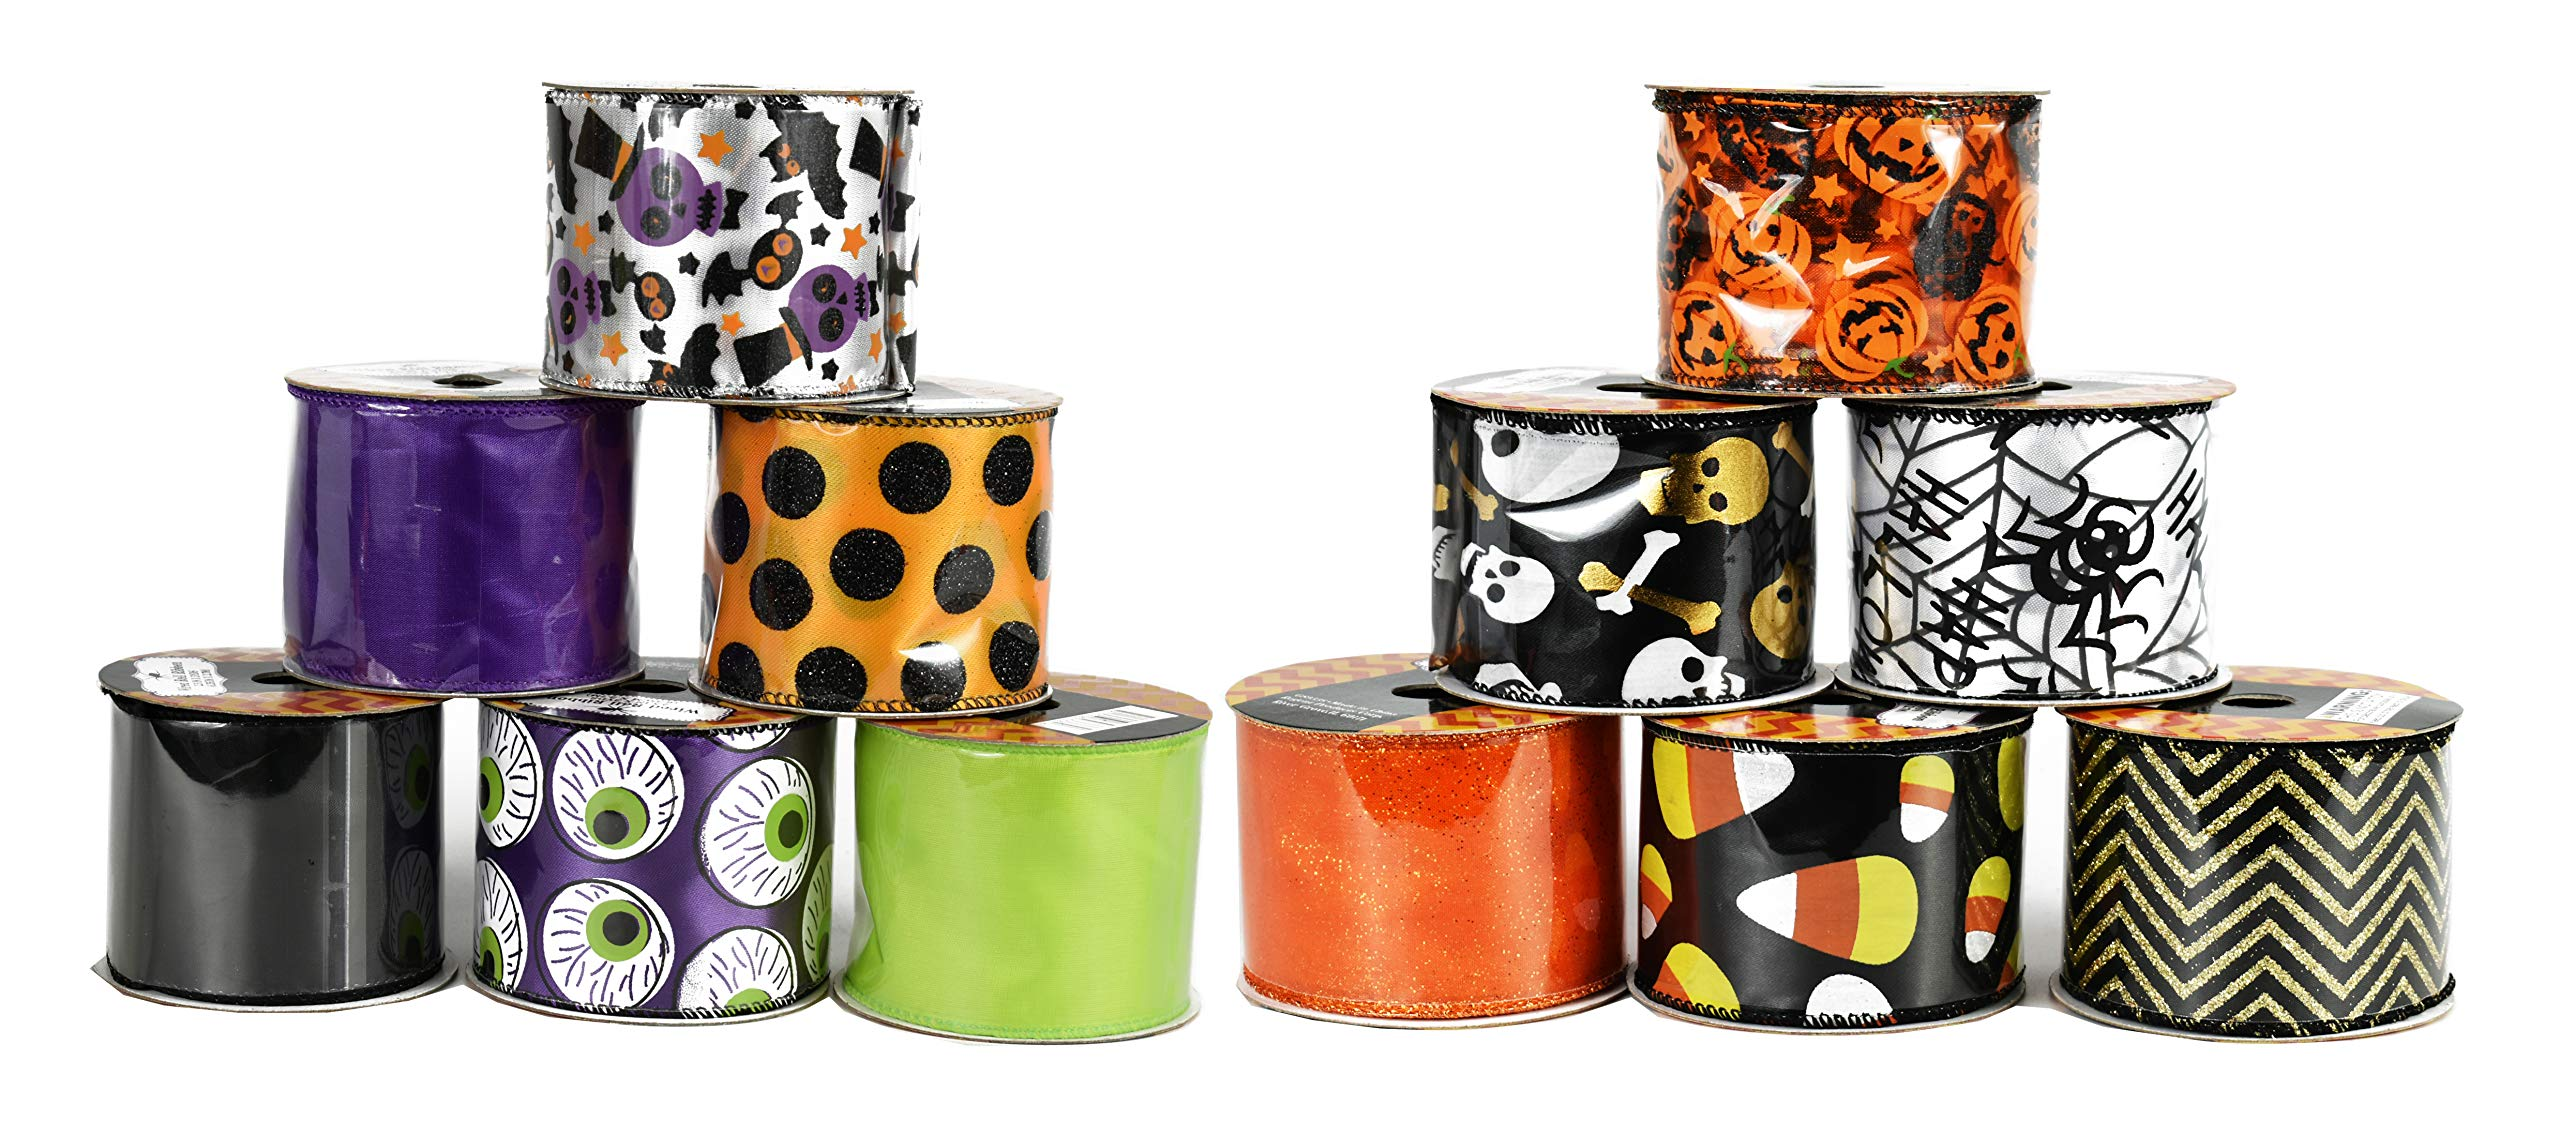 Set of 12 Halloween Wired Ribbon Rolls! 3 Yards of Ribbon Per Roll! Spooky Halloween Decorations Perfect for Classrooms, Schools, Parties and More! (Complete Set)